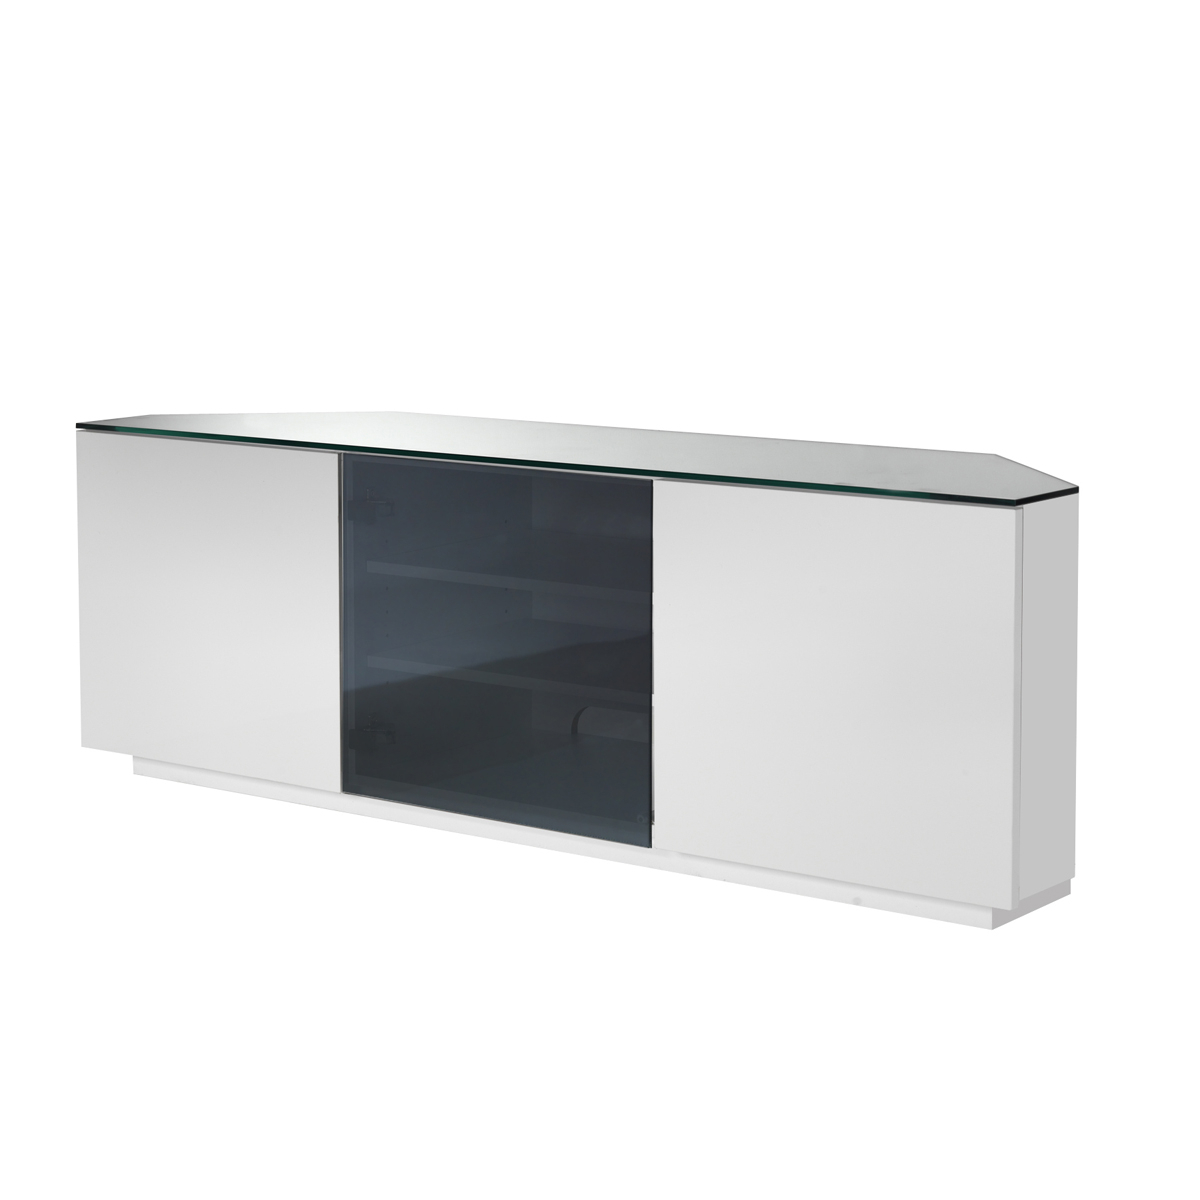 Black Gloss Corner Tv Stand Pertaining To Well Known Ukcf Milan White Gloss & Black Glass Corner Tv Stand 150Cm (View 3 of 20)